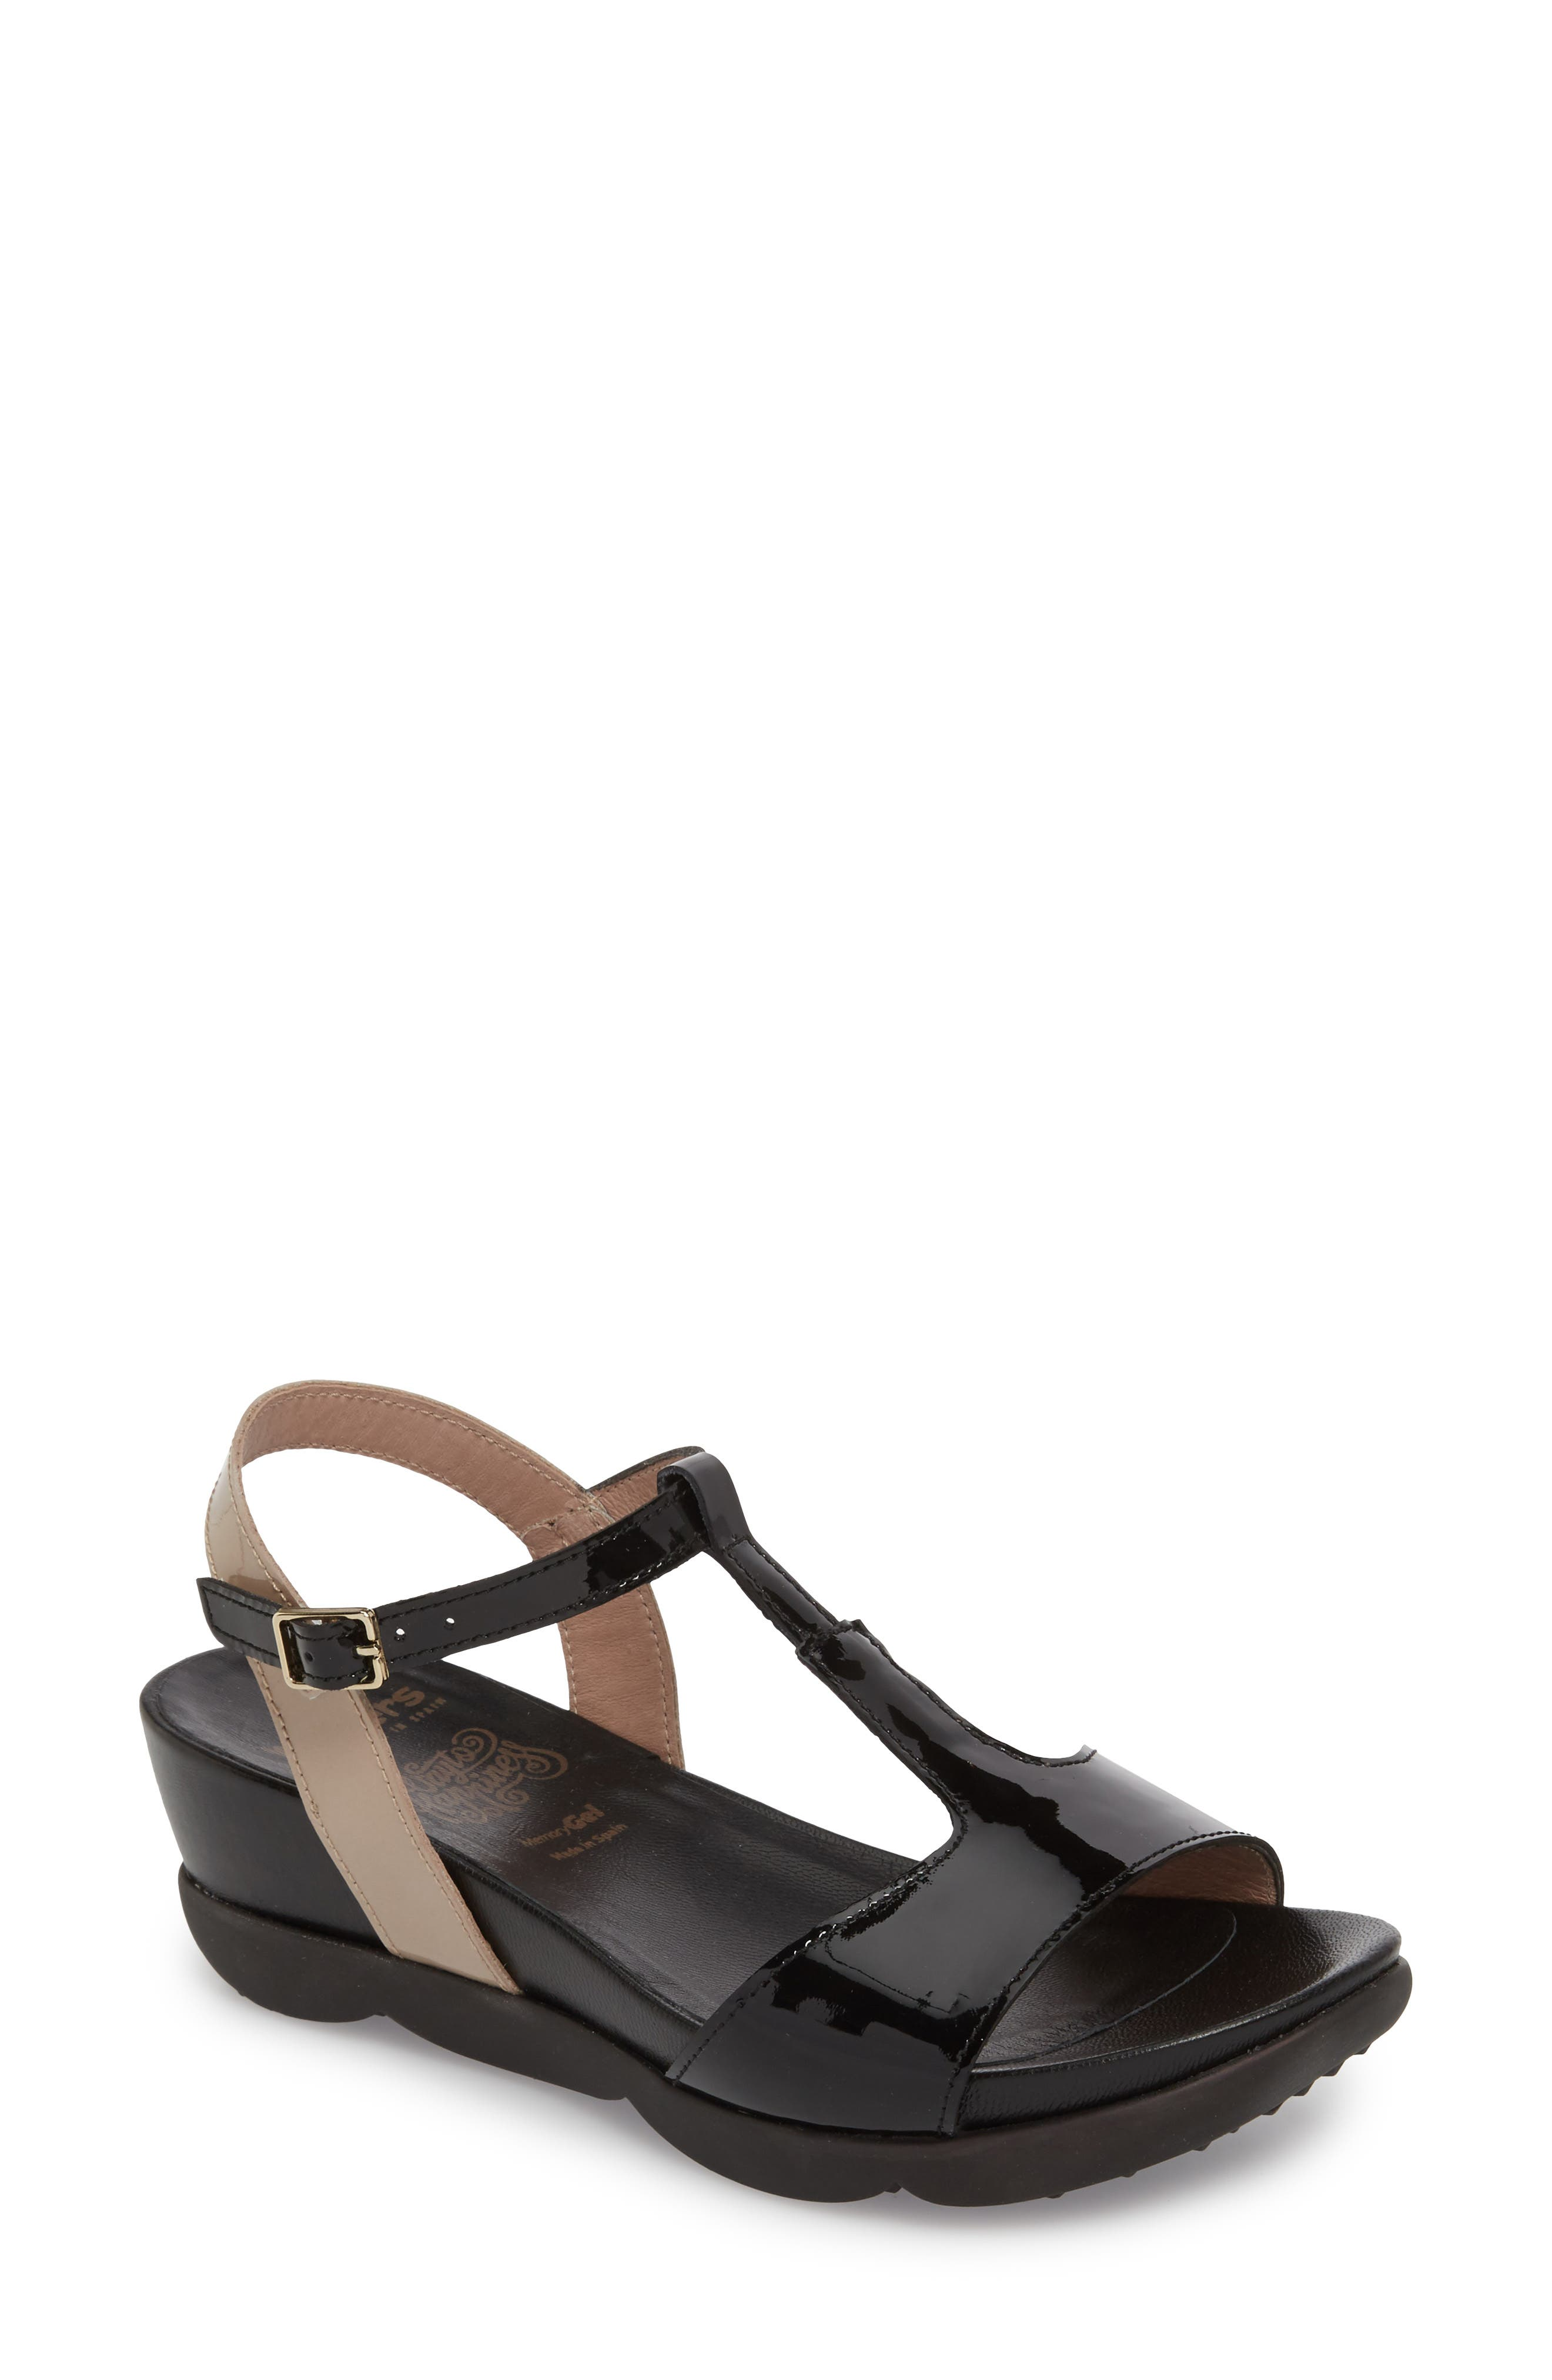 Wedge Sandal,                             Main thumbnail 1, color,                             BLACK/ TAUPE LEATHER